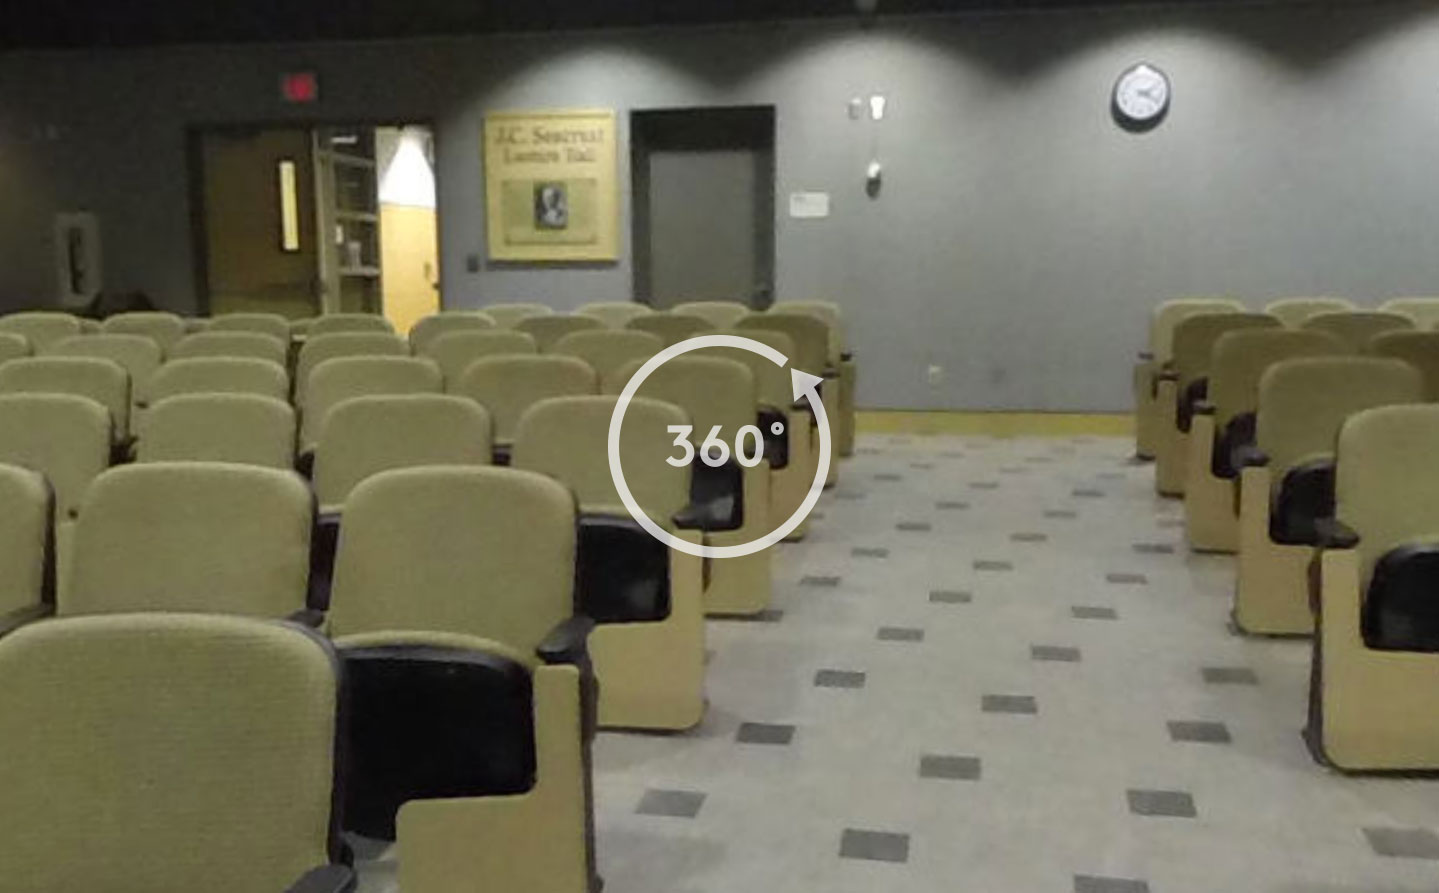 The CoJMC lecture hall: links to 360 degree tour of lecture hall